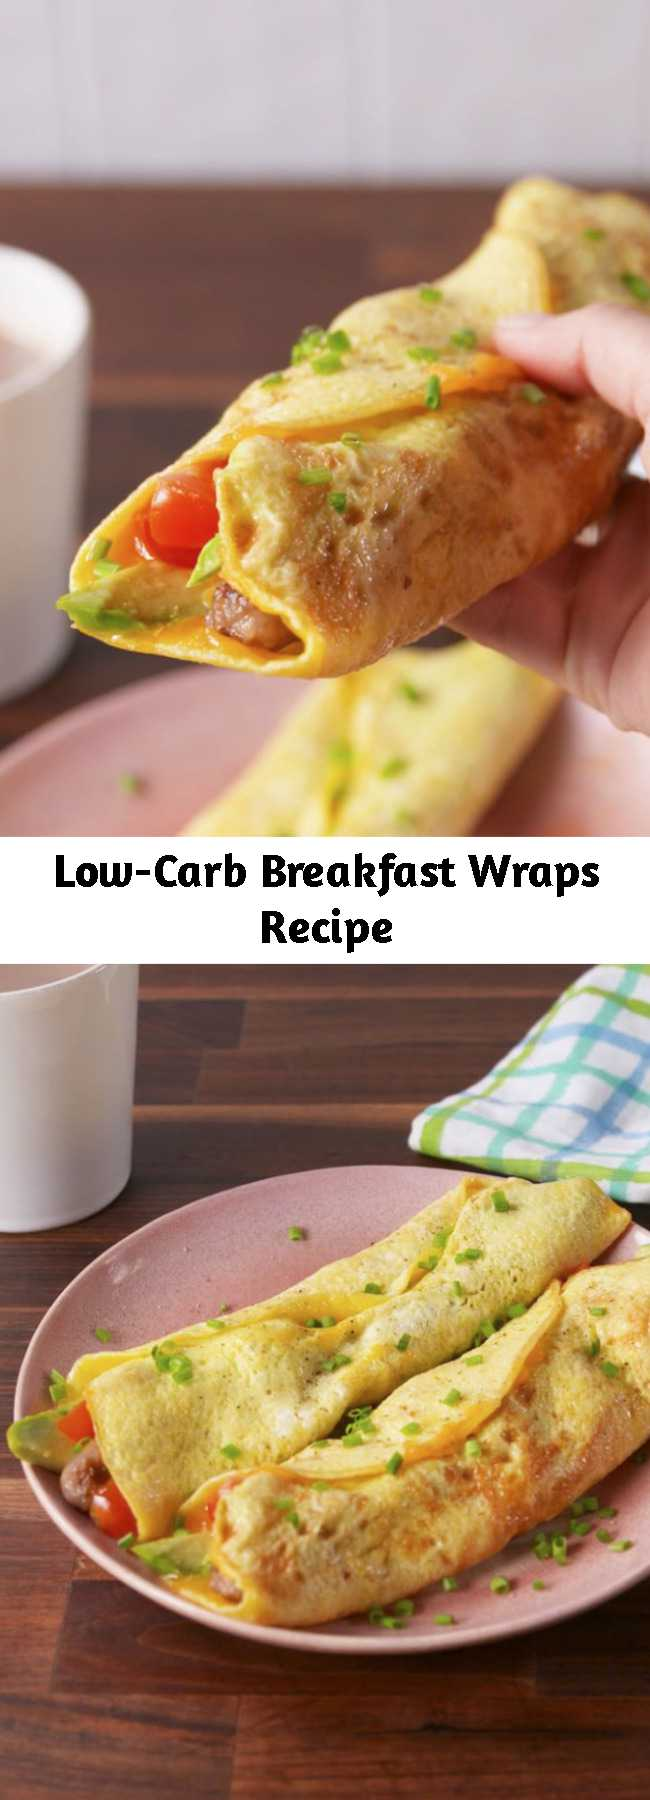 Low-Carb Breakfast Wraps Recipe - These are the best way to start your day.